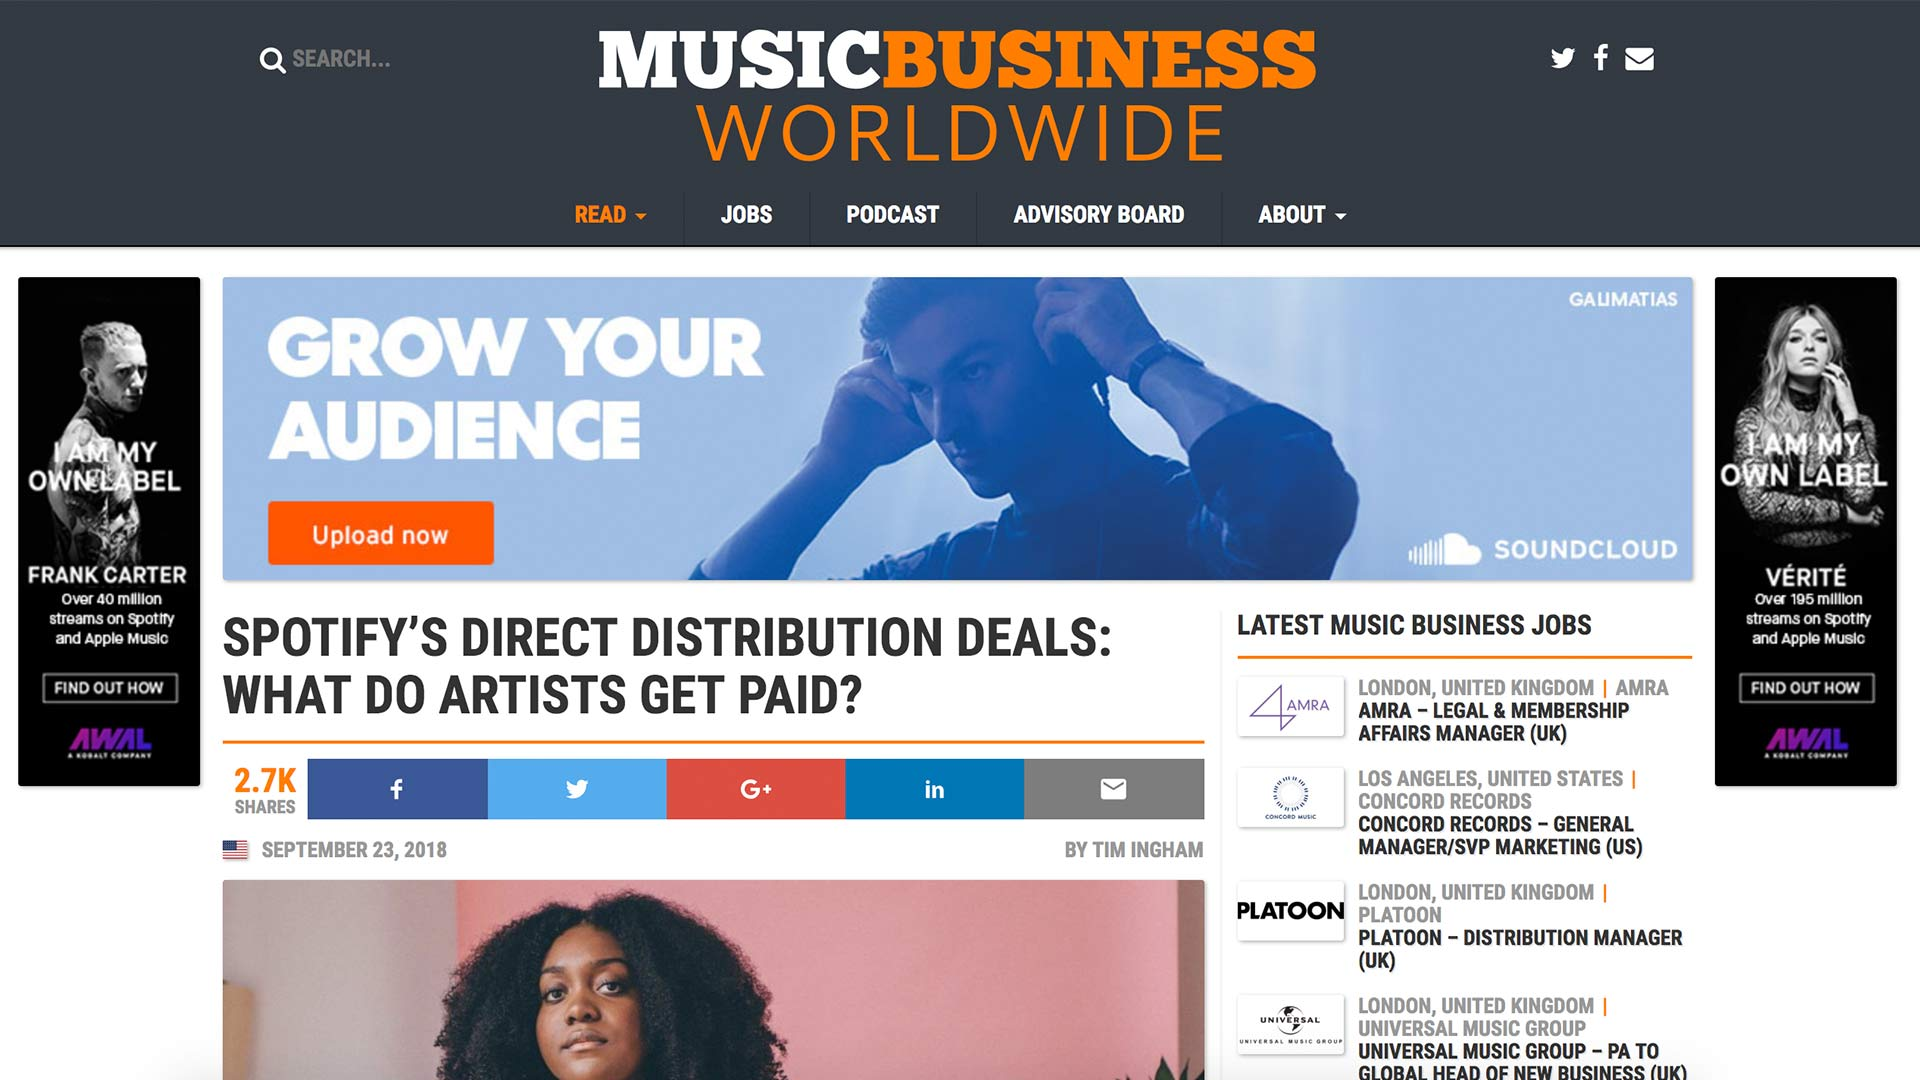 Fairness Rocks News SPOTIFY'S DIRECT DISTRIBUTION DEALS: WHAT DO ARTISTS GET PAID?